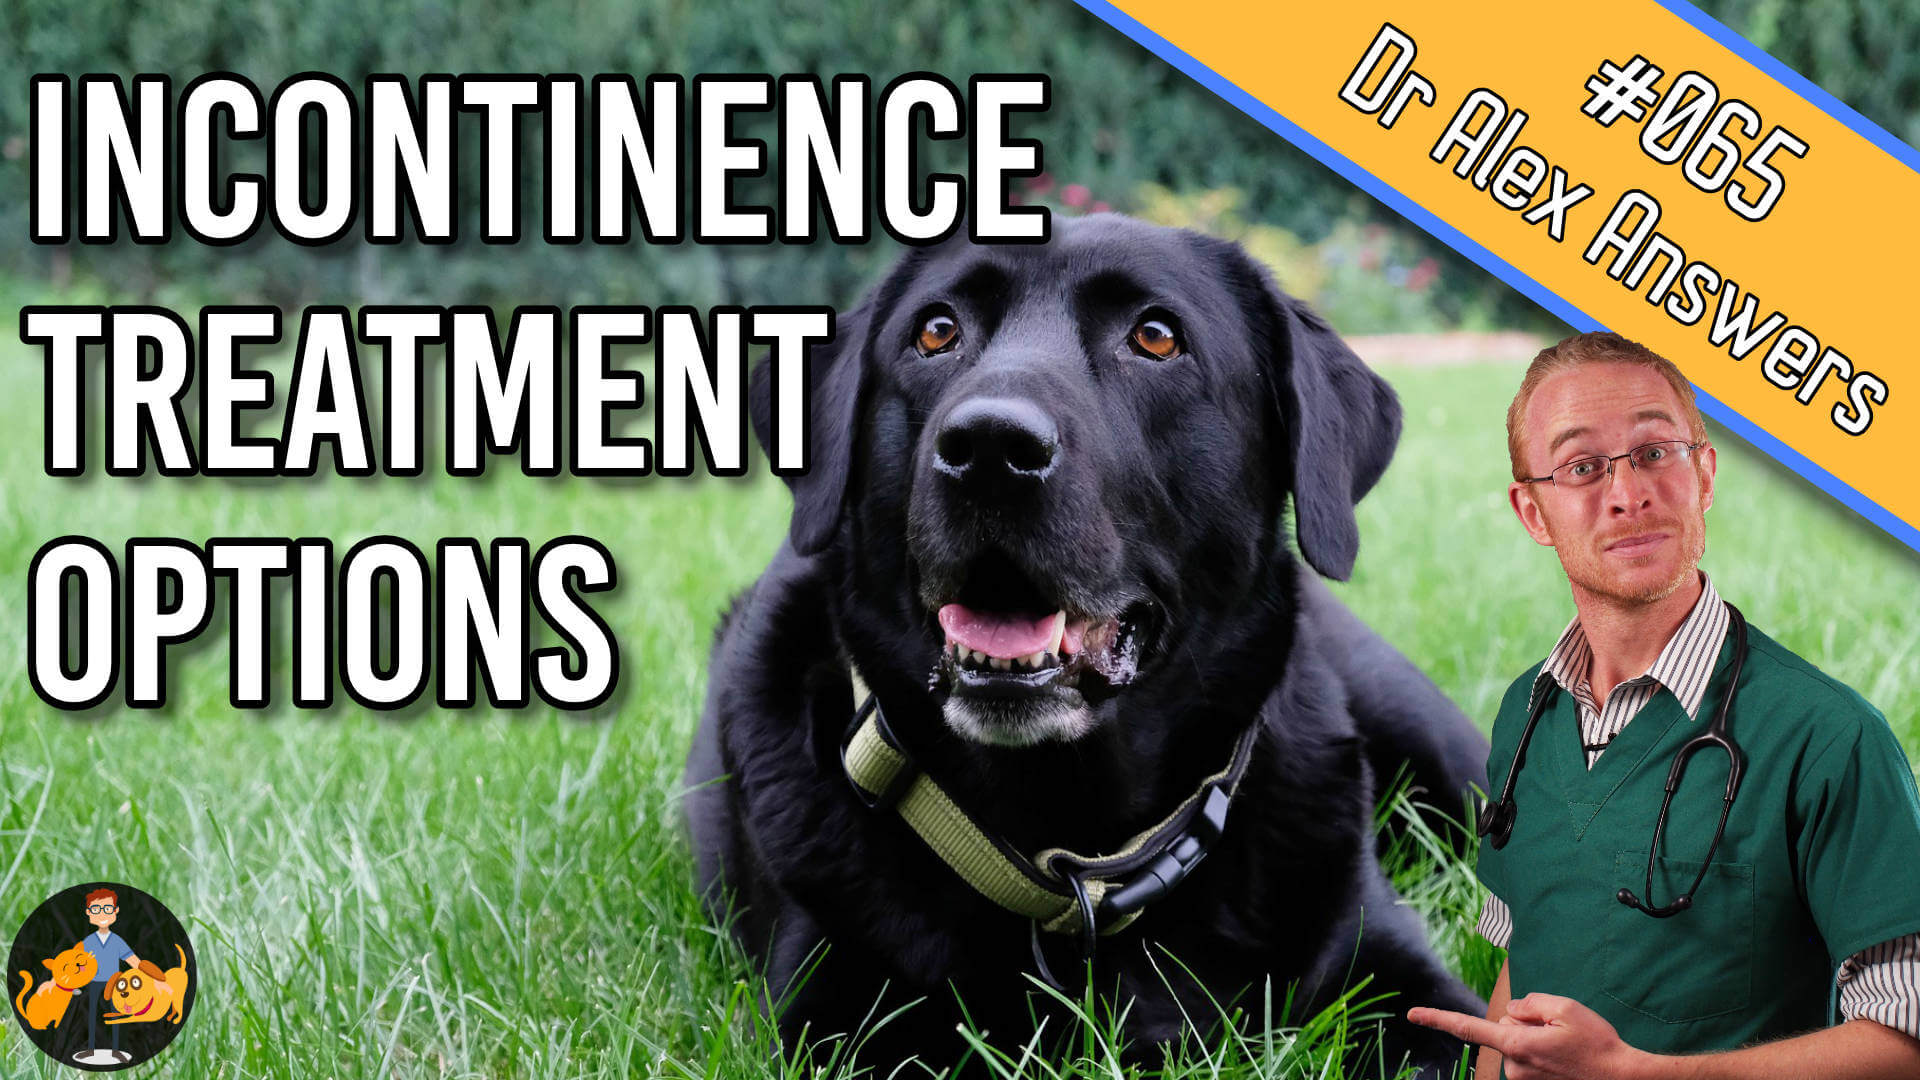 incontinence treatment options 065 compressed.jpg